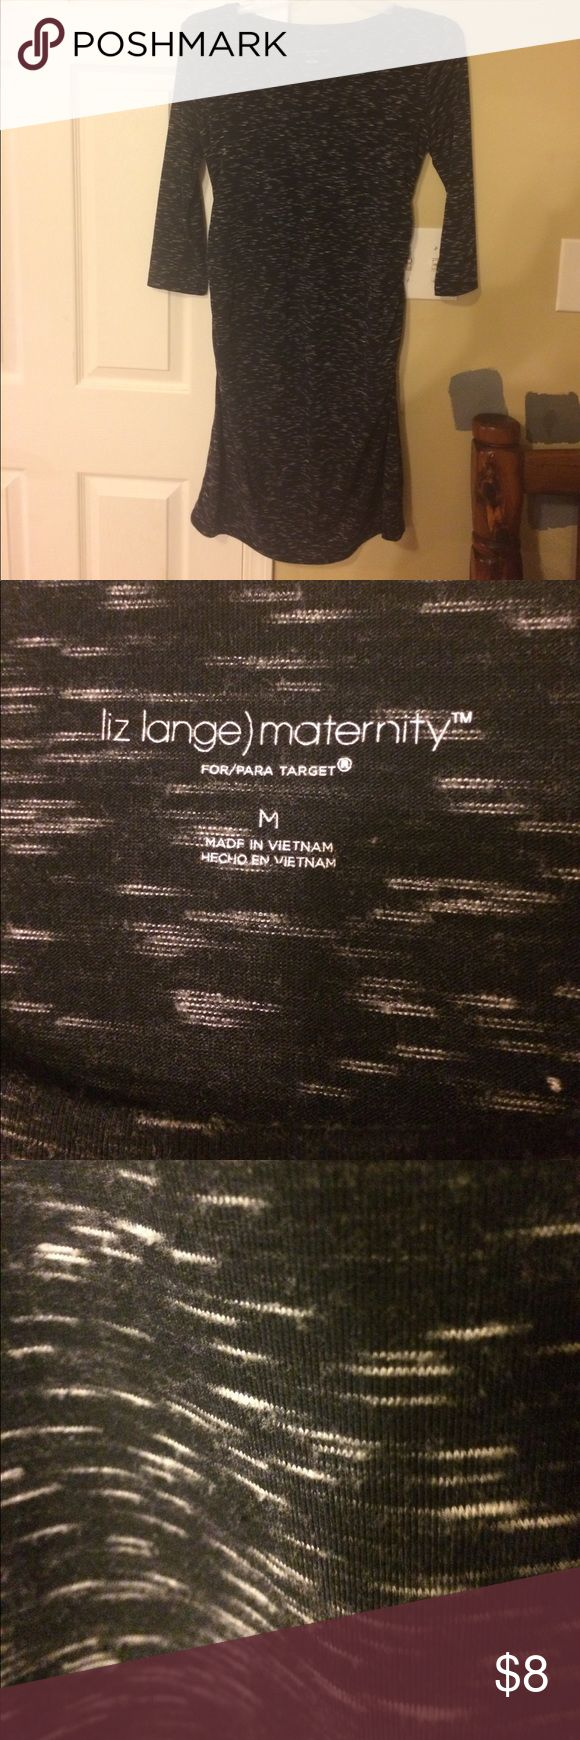 Liz Lange) Maternity Dress Liz Lange Maternity Dress, Black with White mingledly stripes. It's right below the knee, with three quarter length sleeves. Super comfy and cute with a denim vest or a knit cardigan. ☀️ Liz Lange Dresses Midi